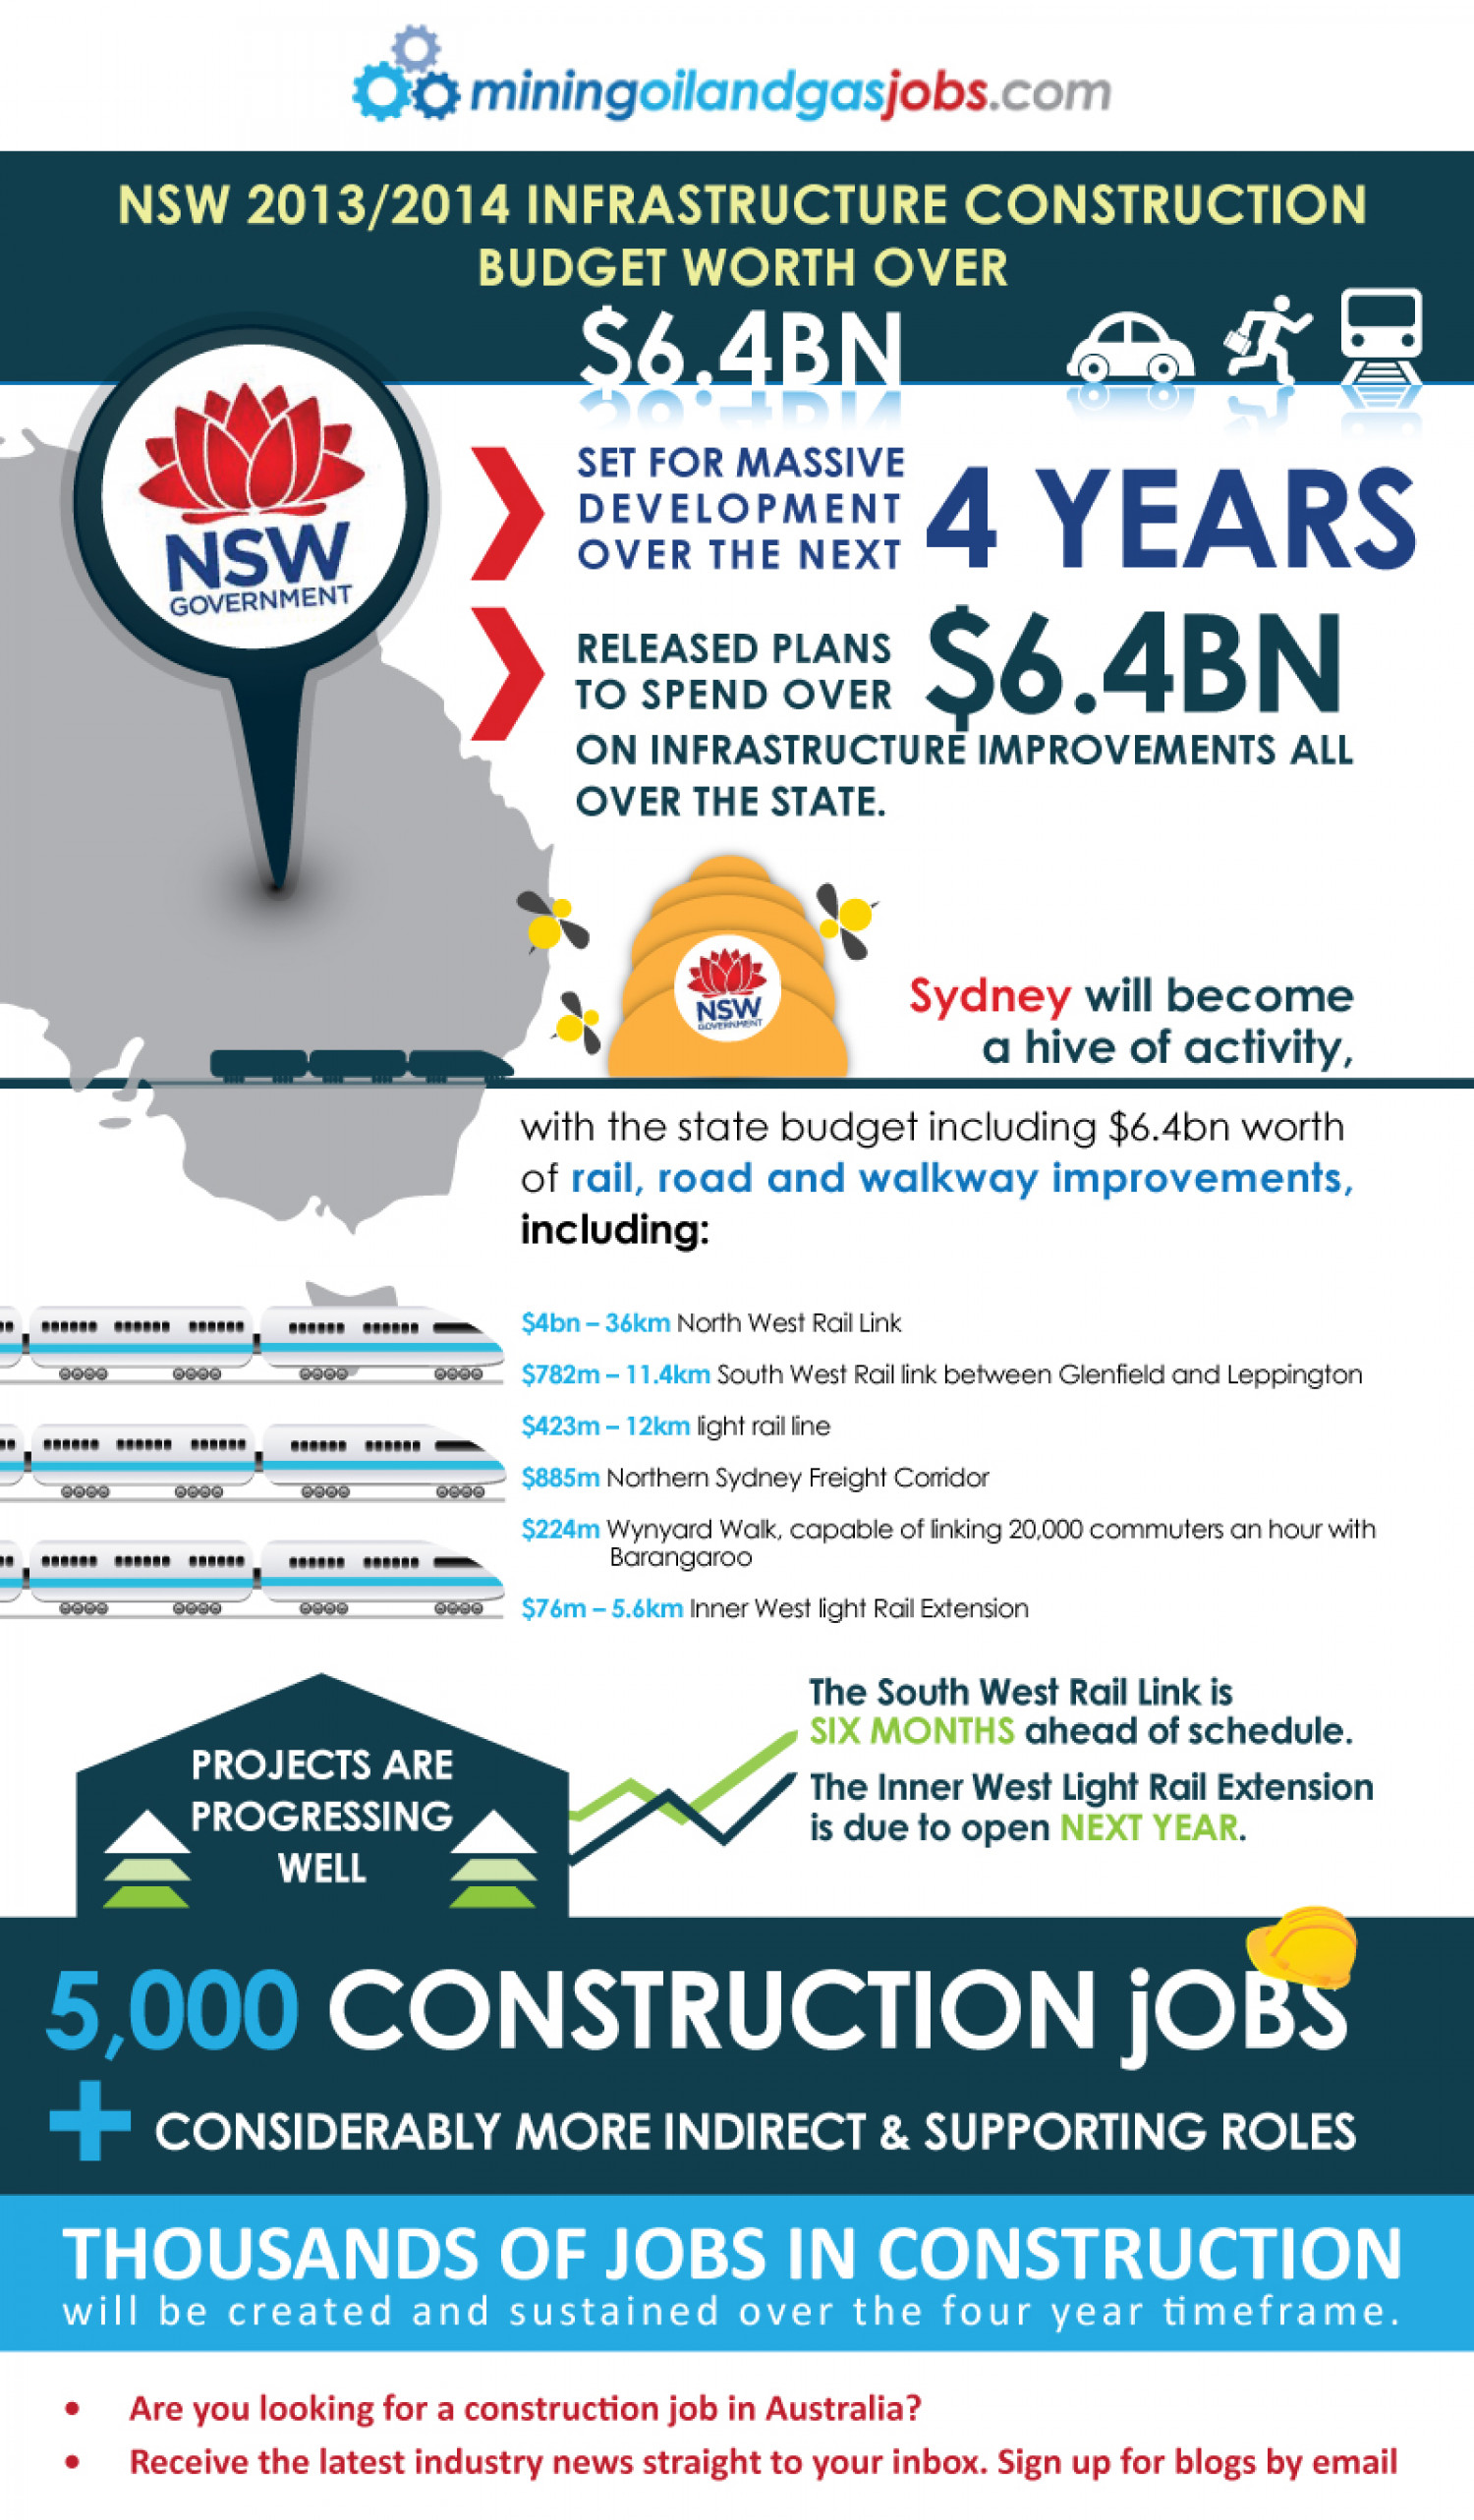 NSW 2013/2014 Infrastructure Construction Budget Infographic